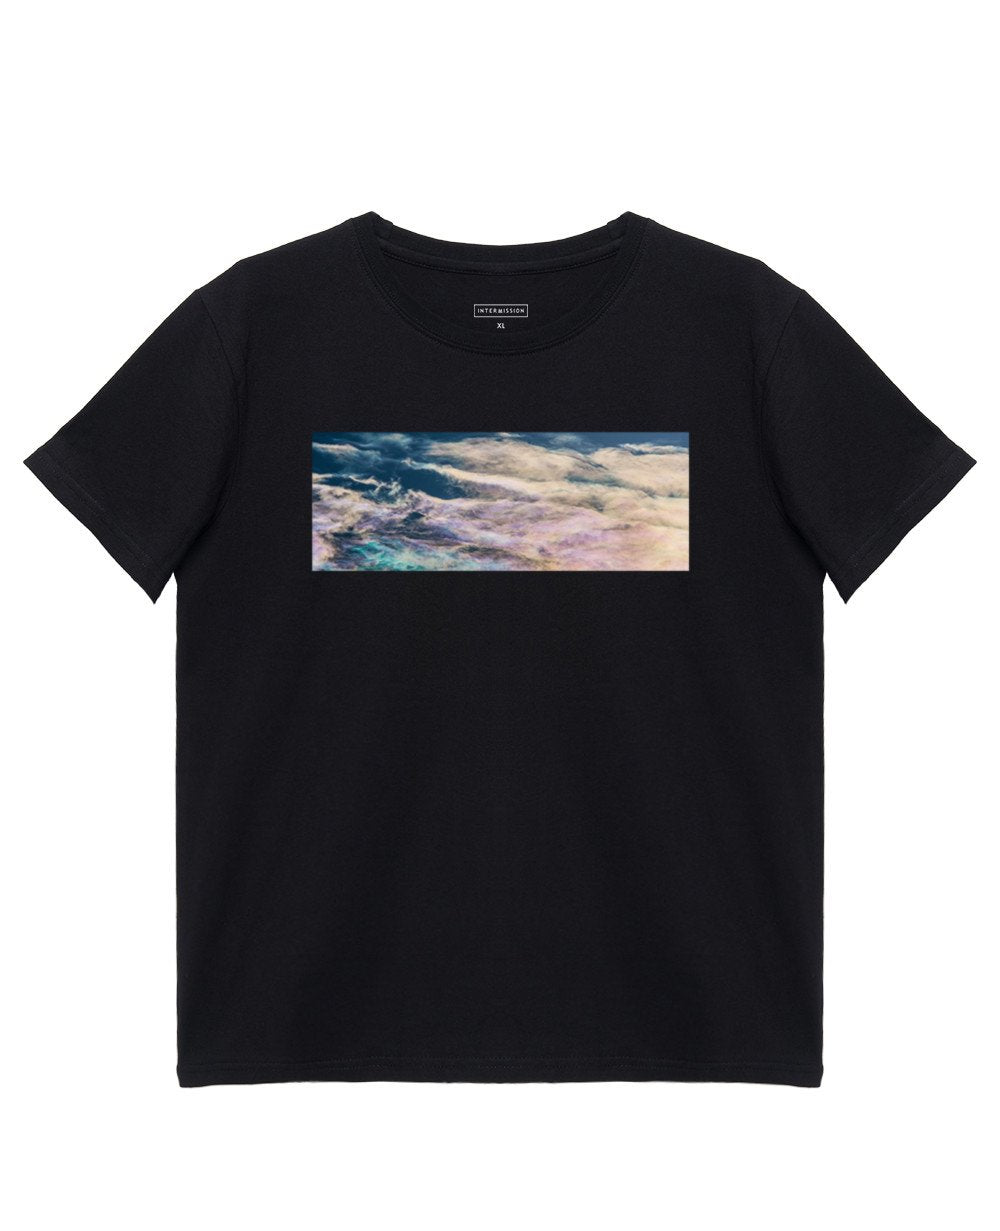 Abstract Print T-Shirt in Black - T-Shirts - INTERMISSION - BRANMA